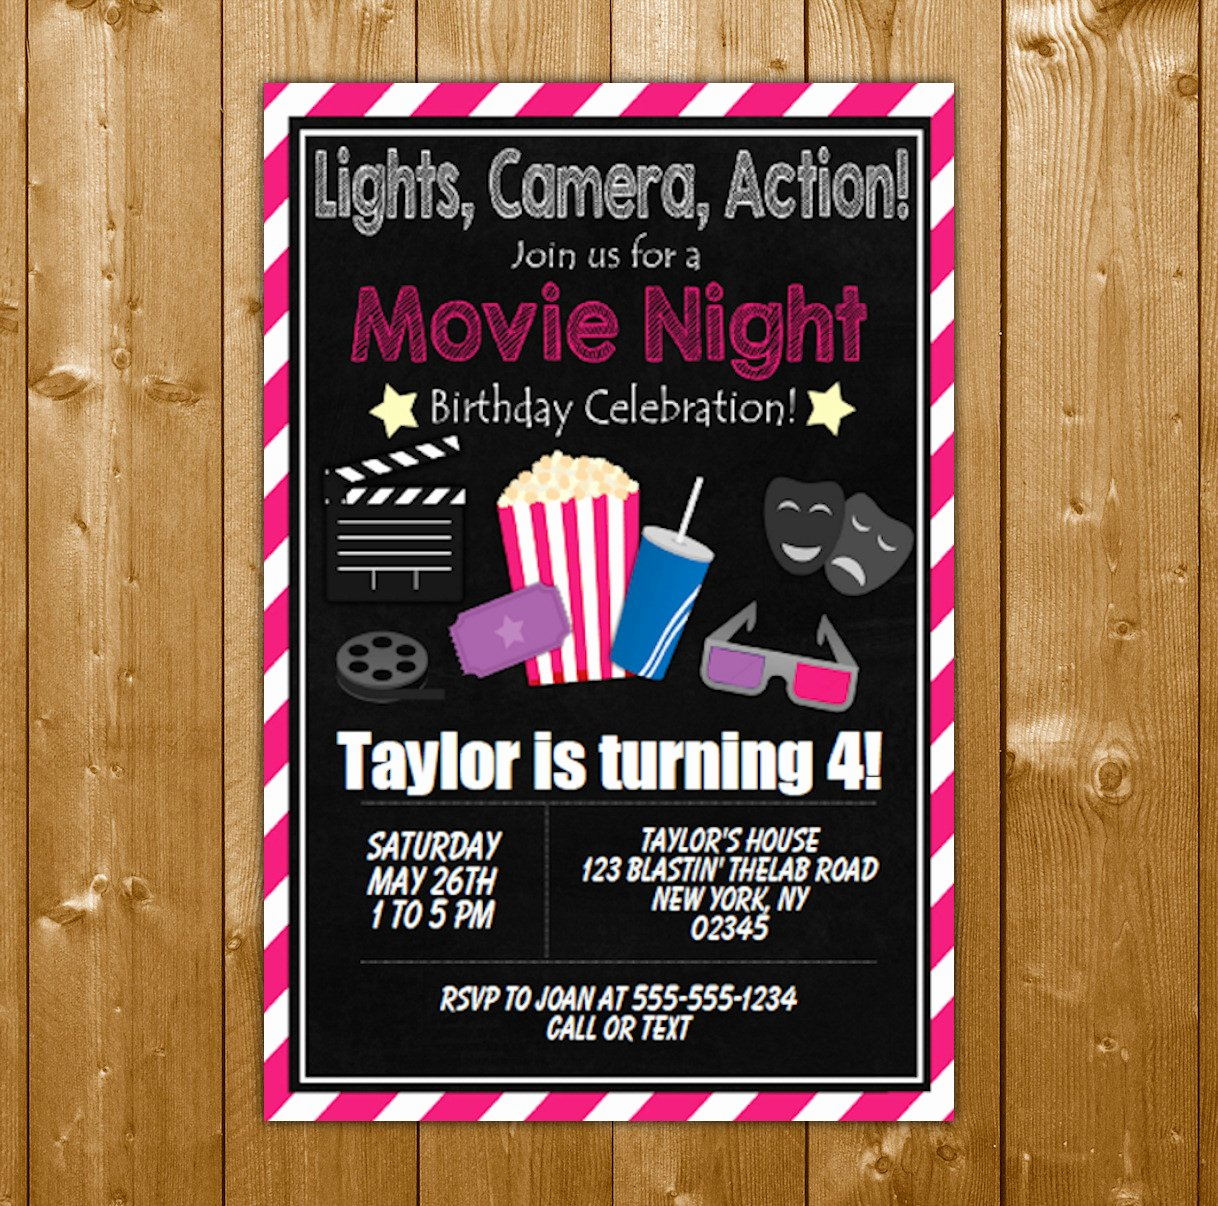 Printable Birthday Party Invitations Fresh Movie Party Invitation Printable Digital Download Girl